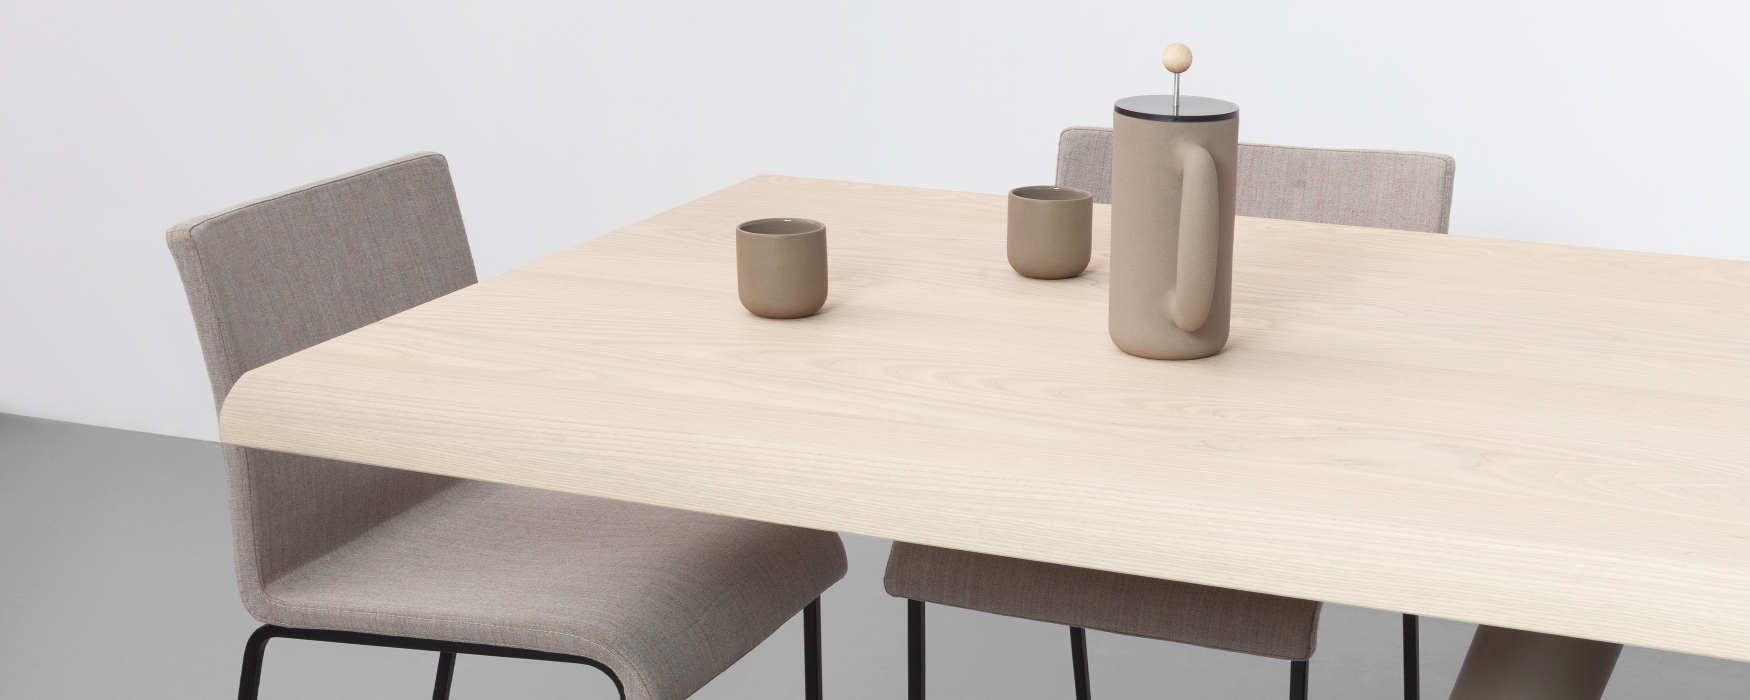 Dutch Design Dock - Eettafel Odesi